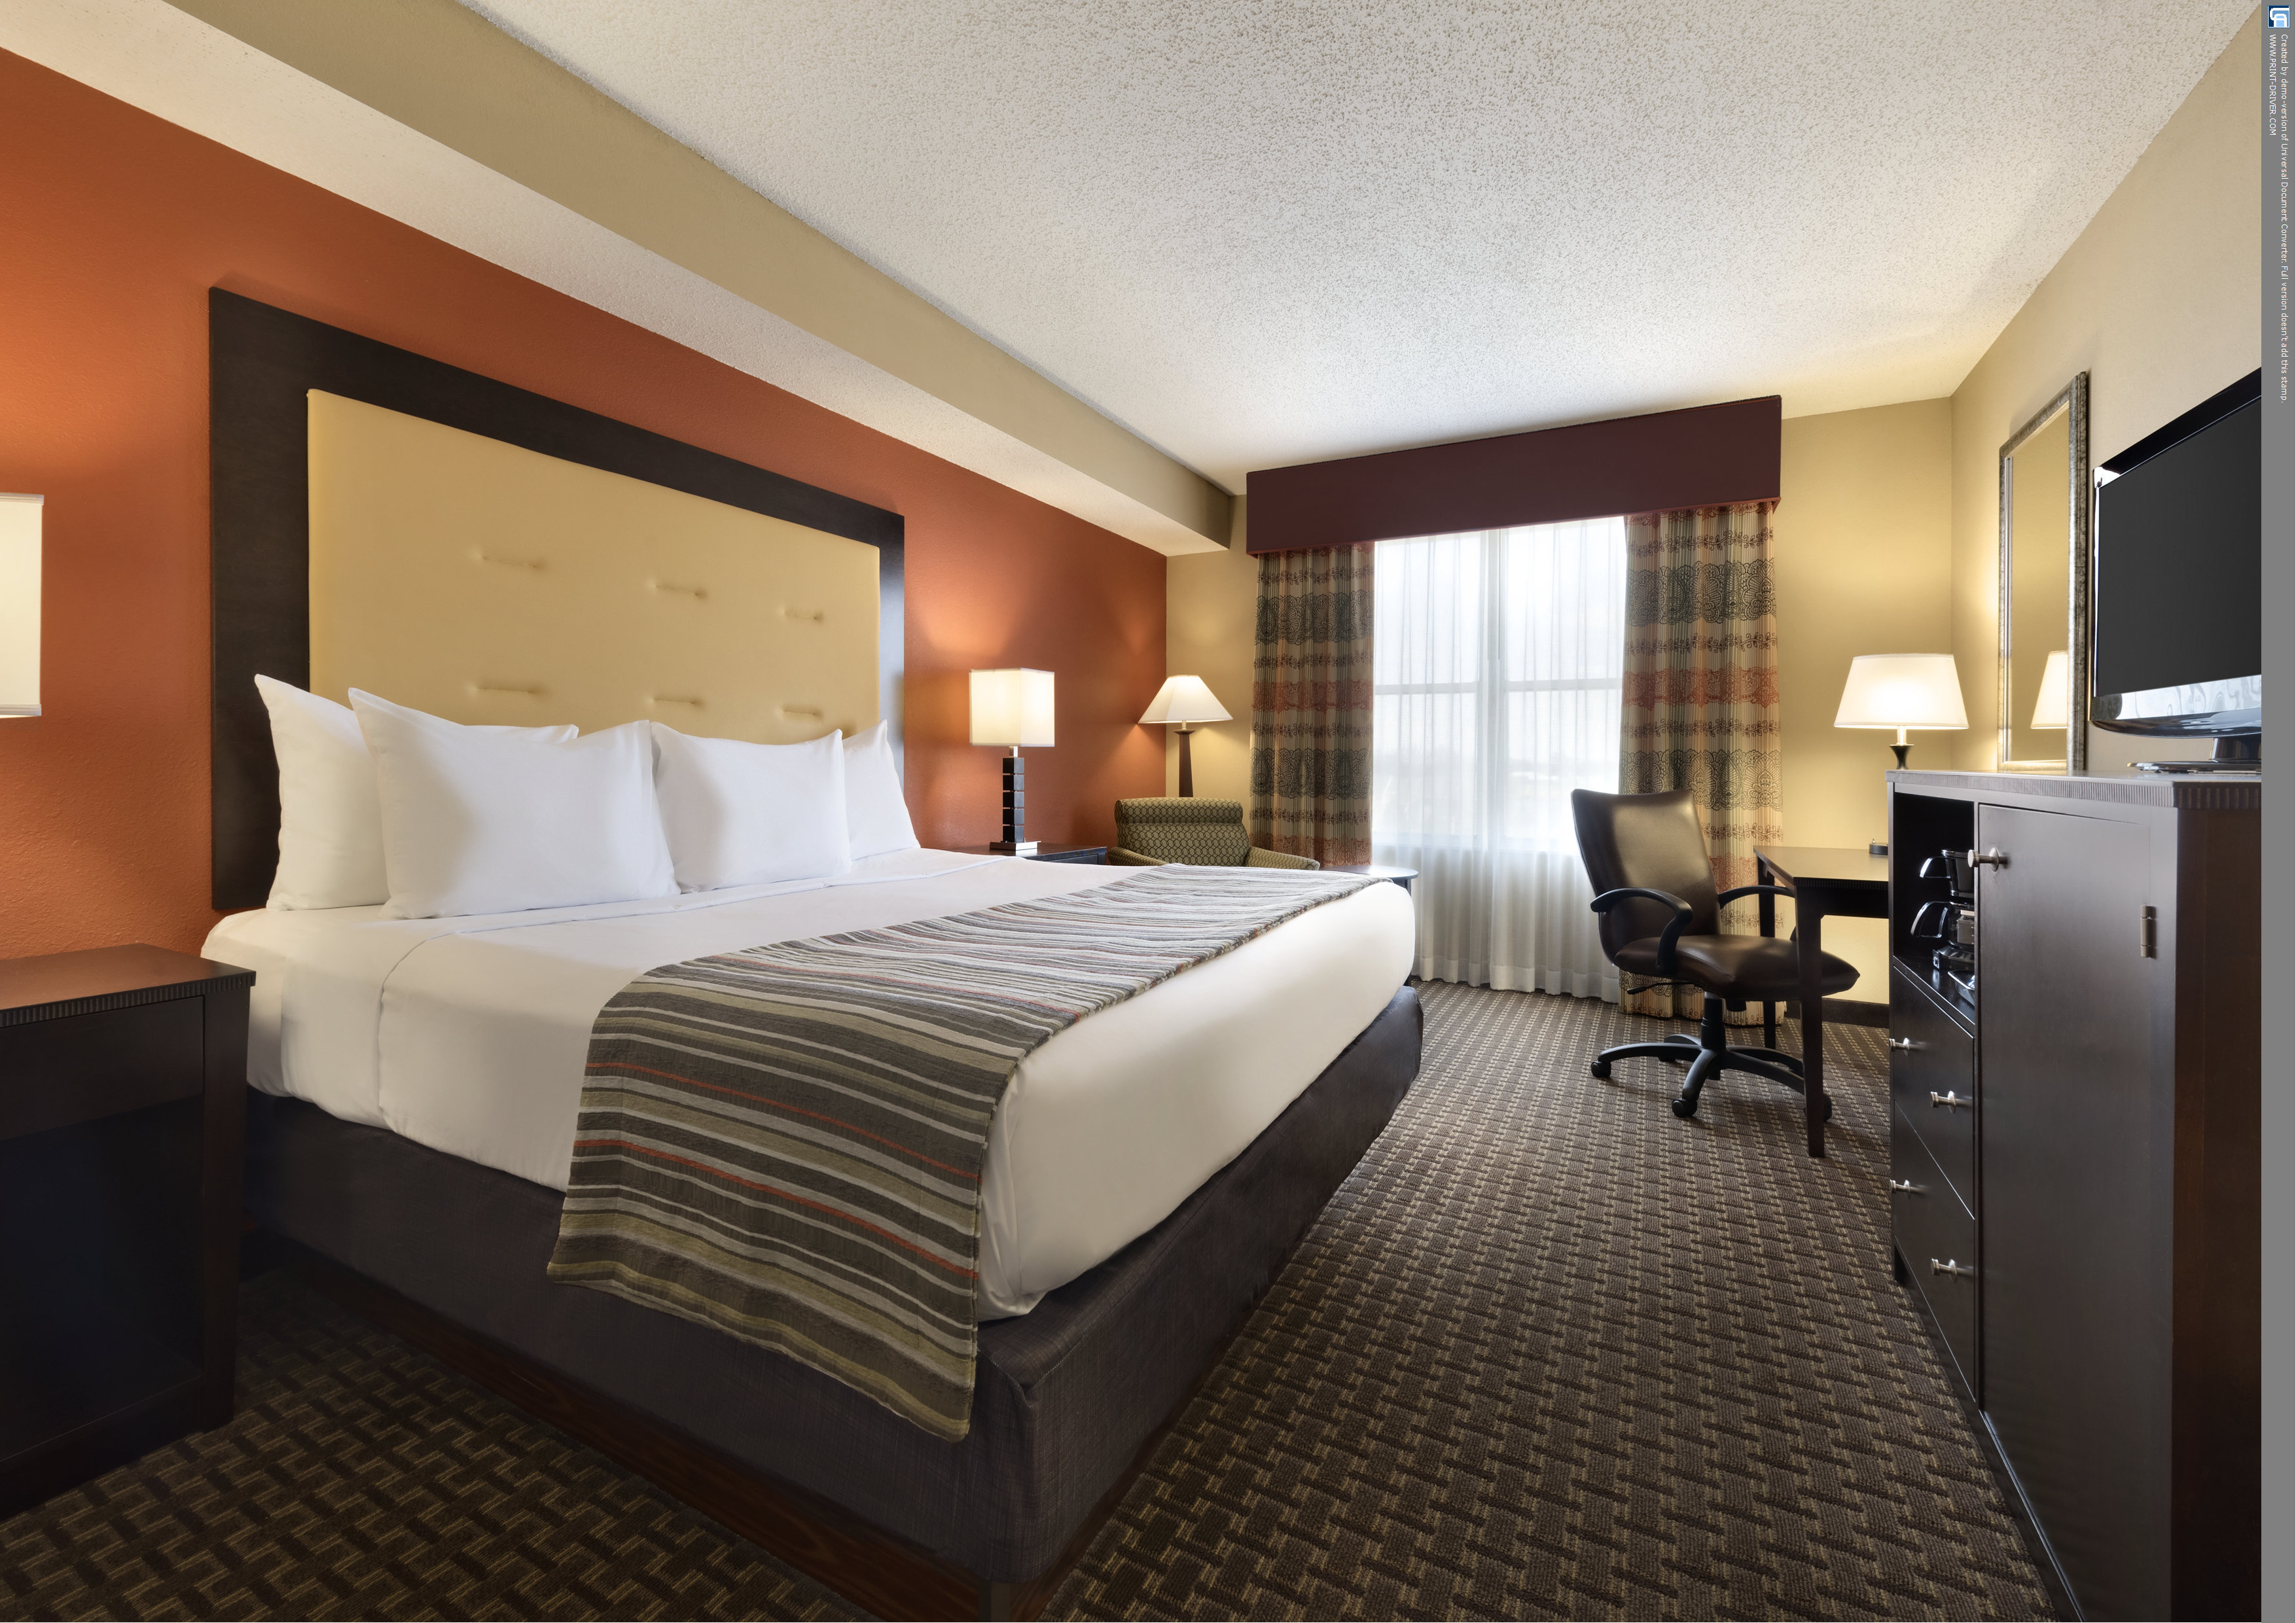 Country Inn & Suites by Radisson, Evansville, IN image 3